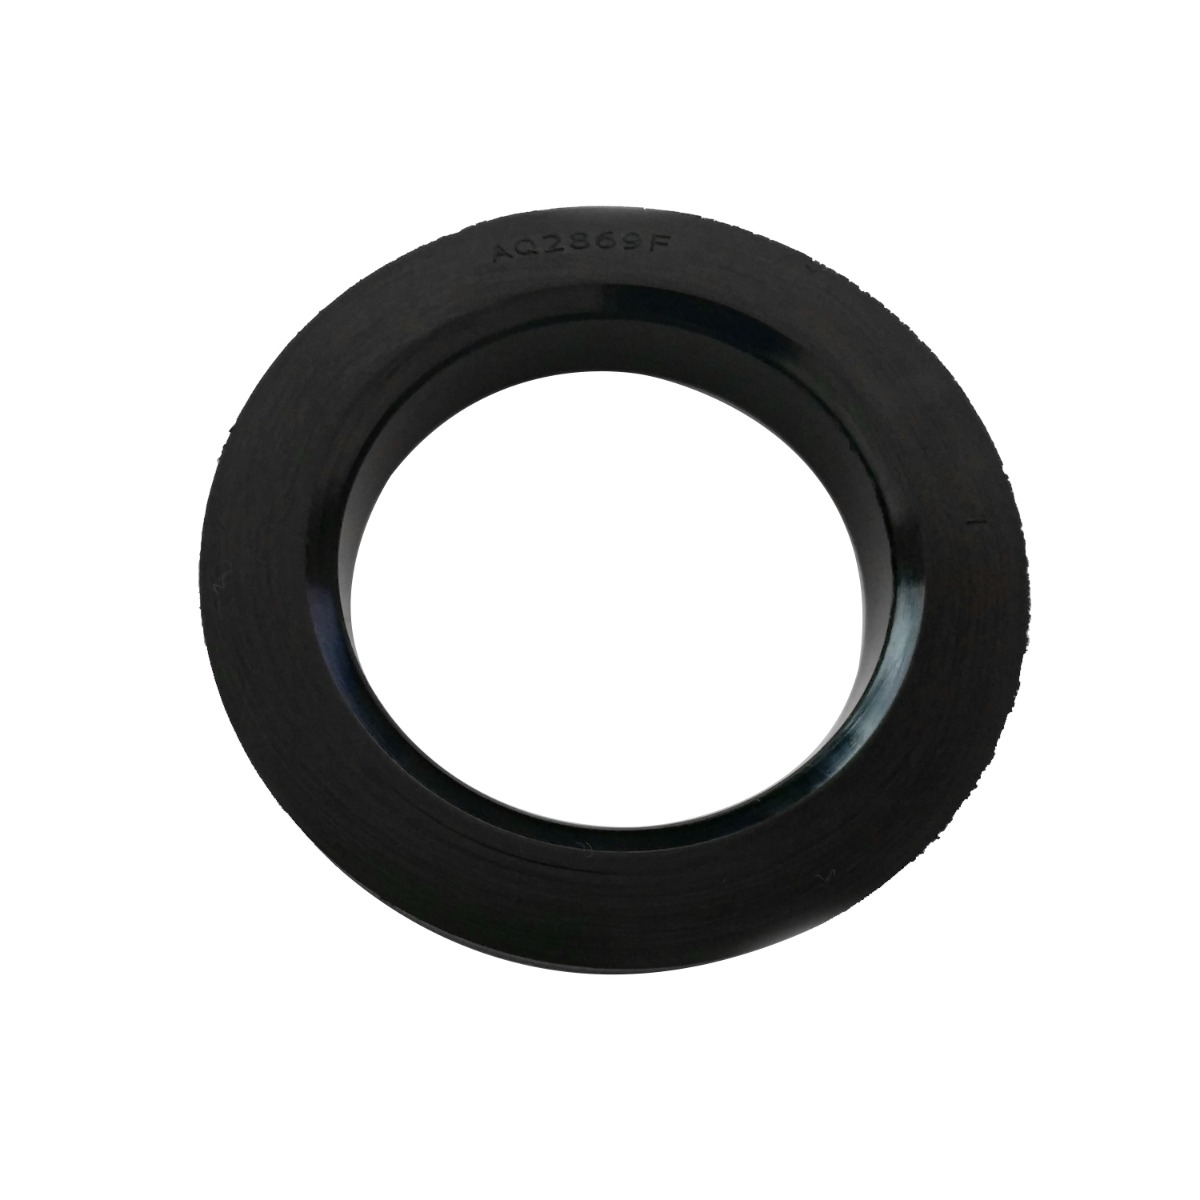 Front Axle Oil Seal E-6A320-56220 Compatible With Kubota Tractor B7500HSD B7500D B7500DTN B7400HSD BX2670-1 BX2670 BX2660D BX25DLB-1 BX25DLB